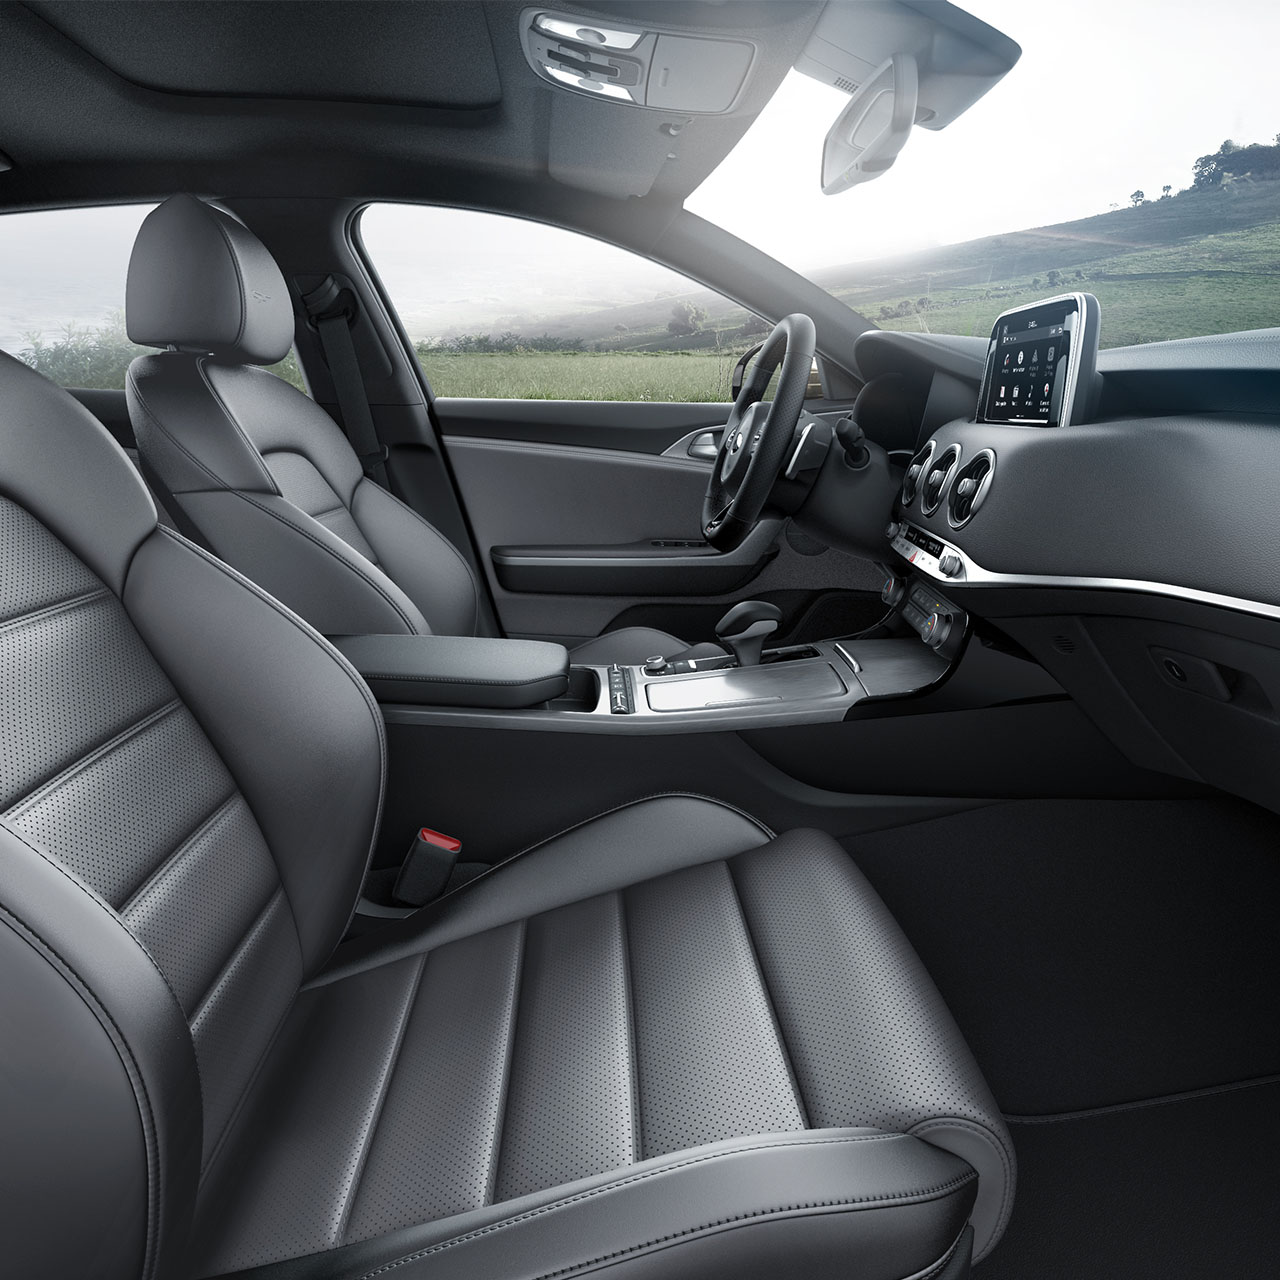 The Grand Interior of the 2018 Stinger